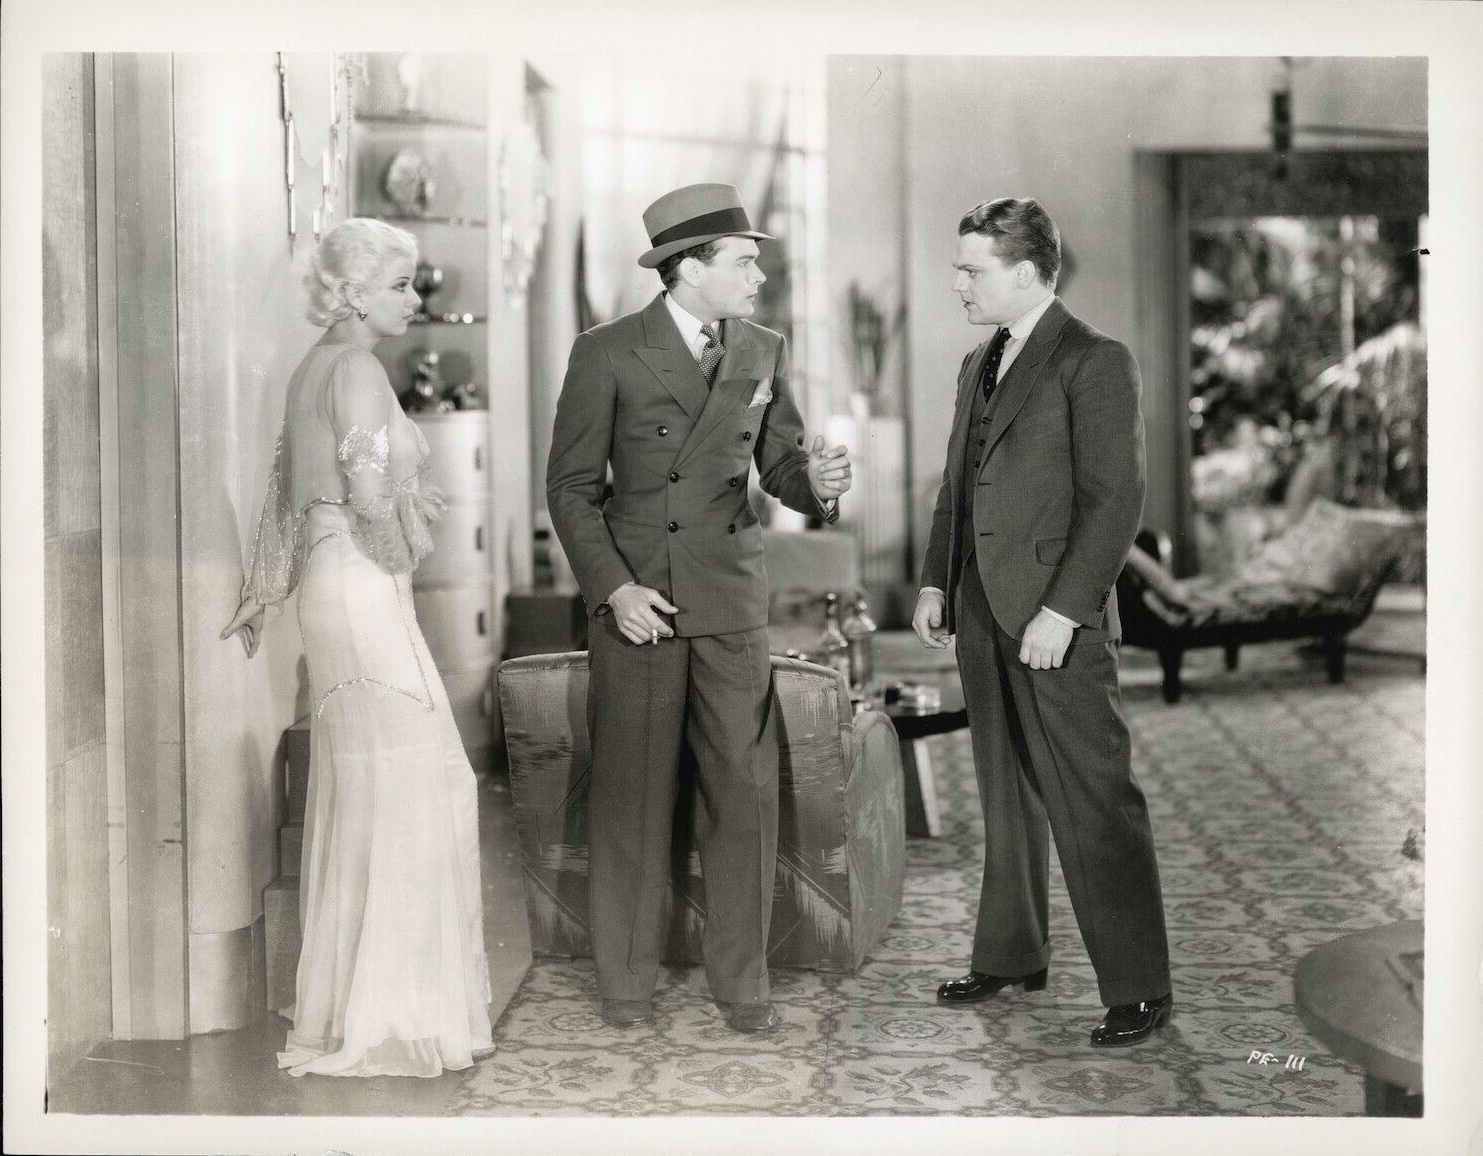 James Cagney, Jean Harlow, and Edward Woods in The Public Enemy (1931)